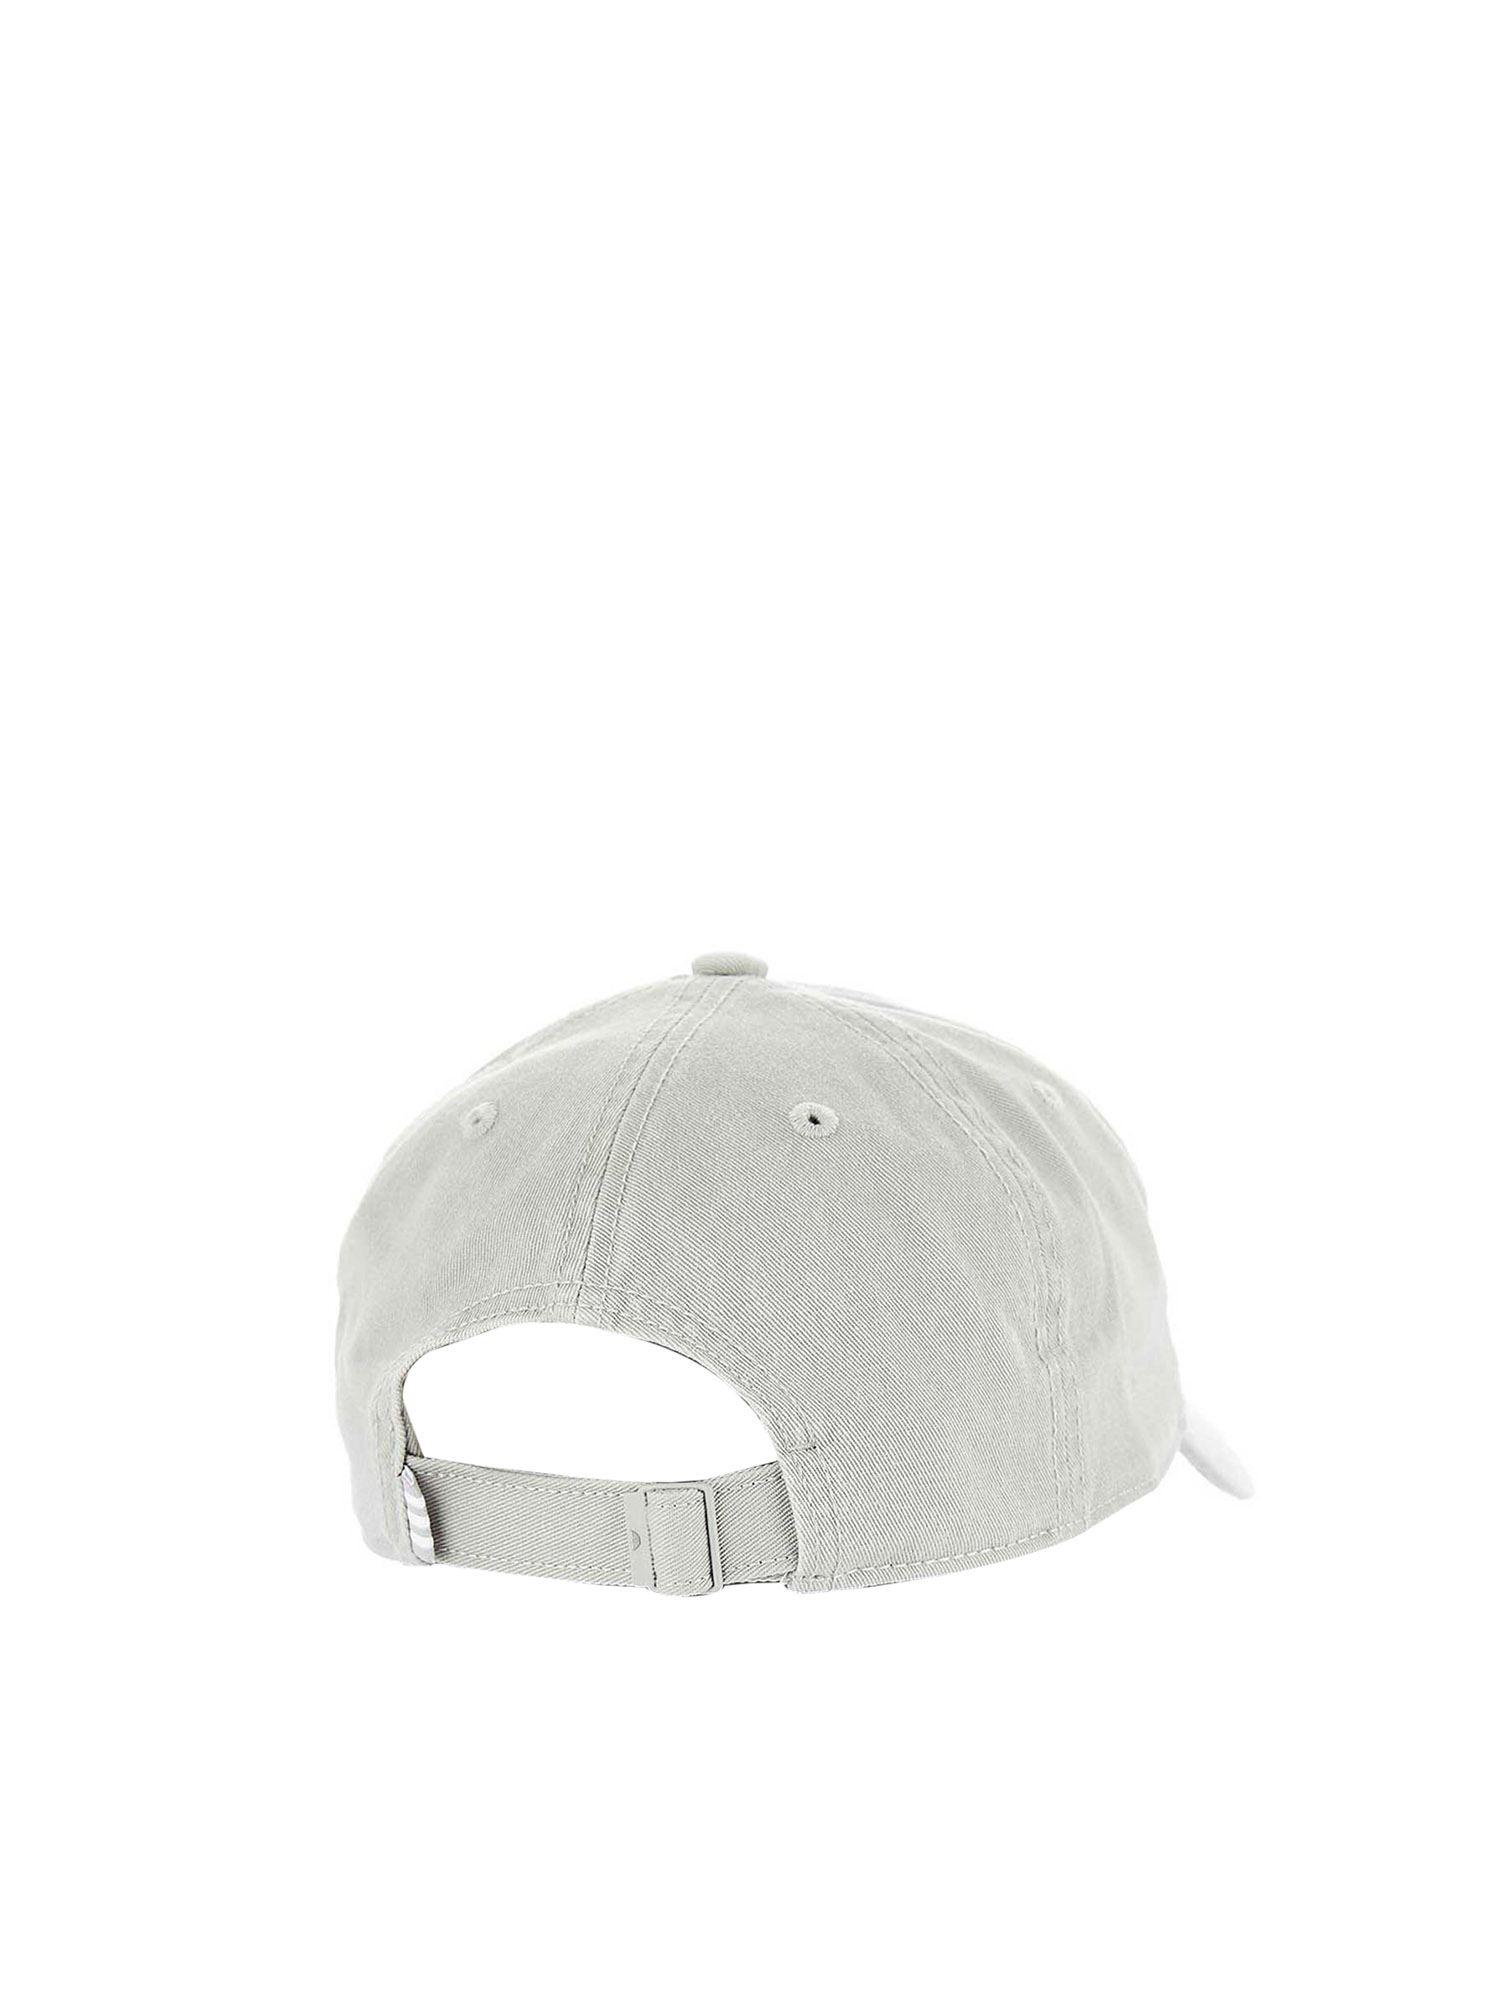 outlet store b9600 ba053 adidas Originals Adicolor Washed Cap In Grey in Gray - Lyst